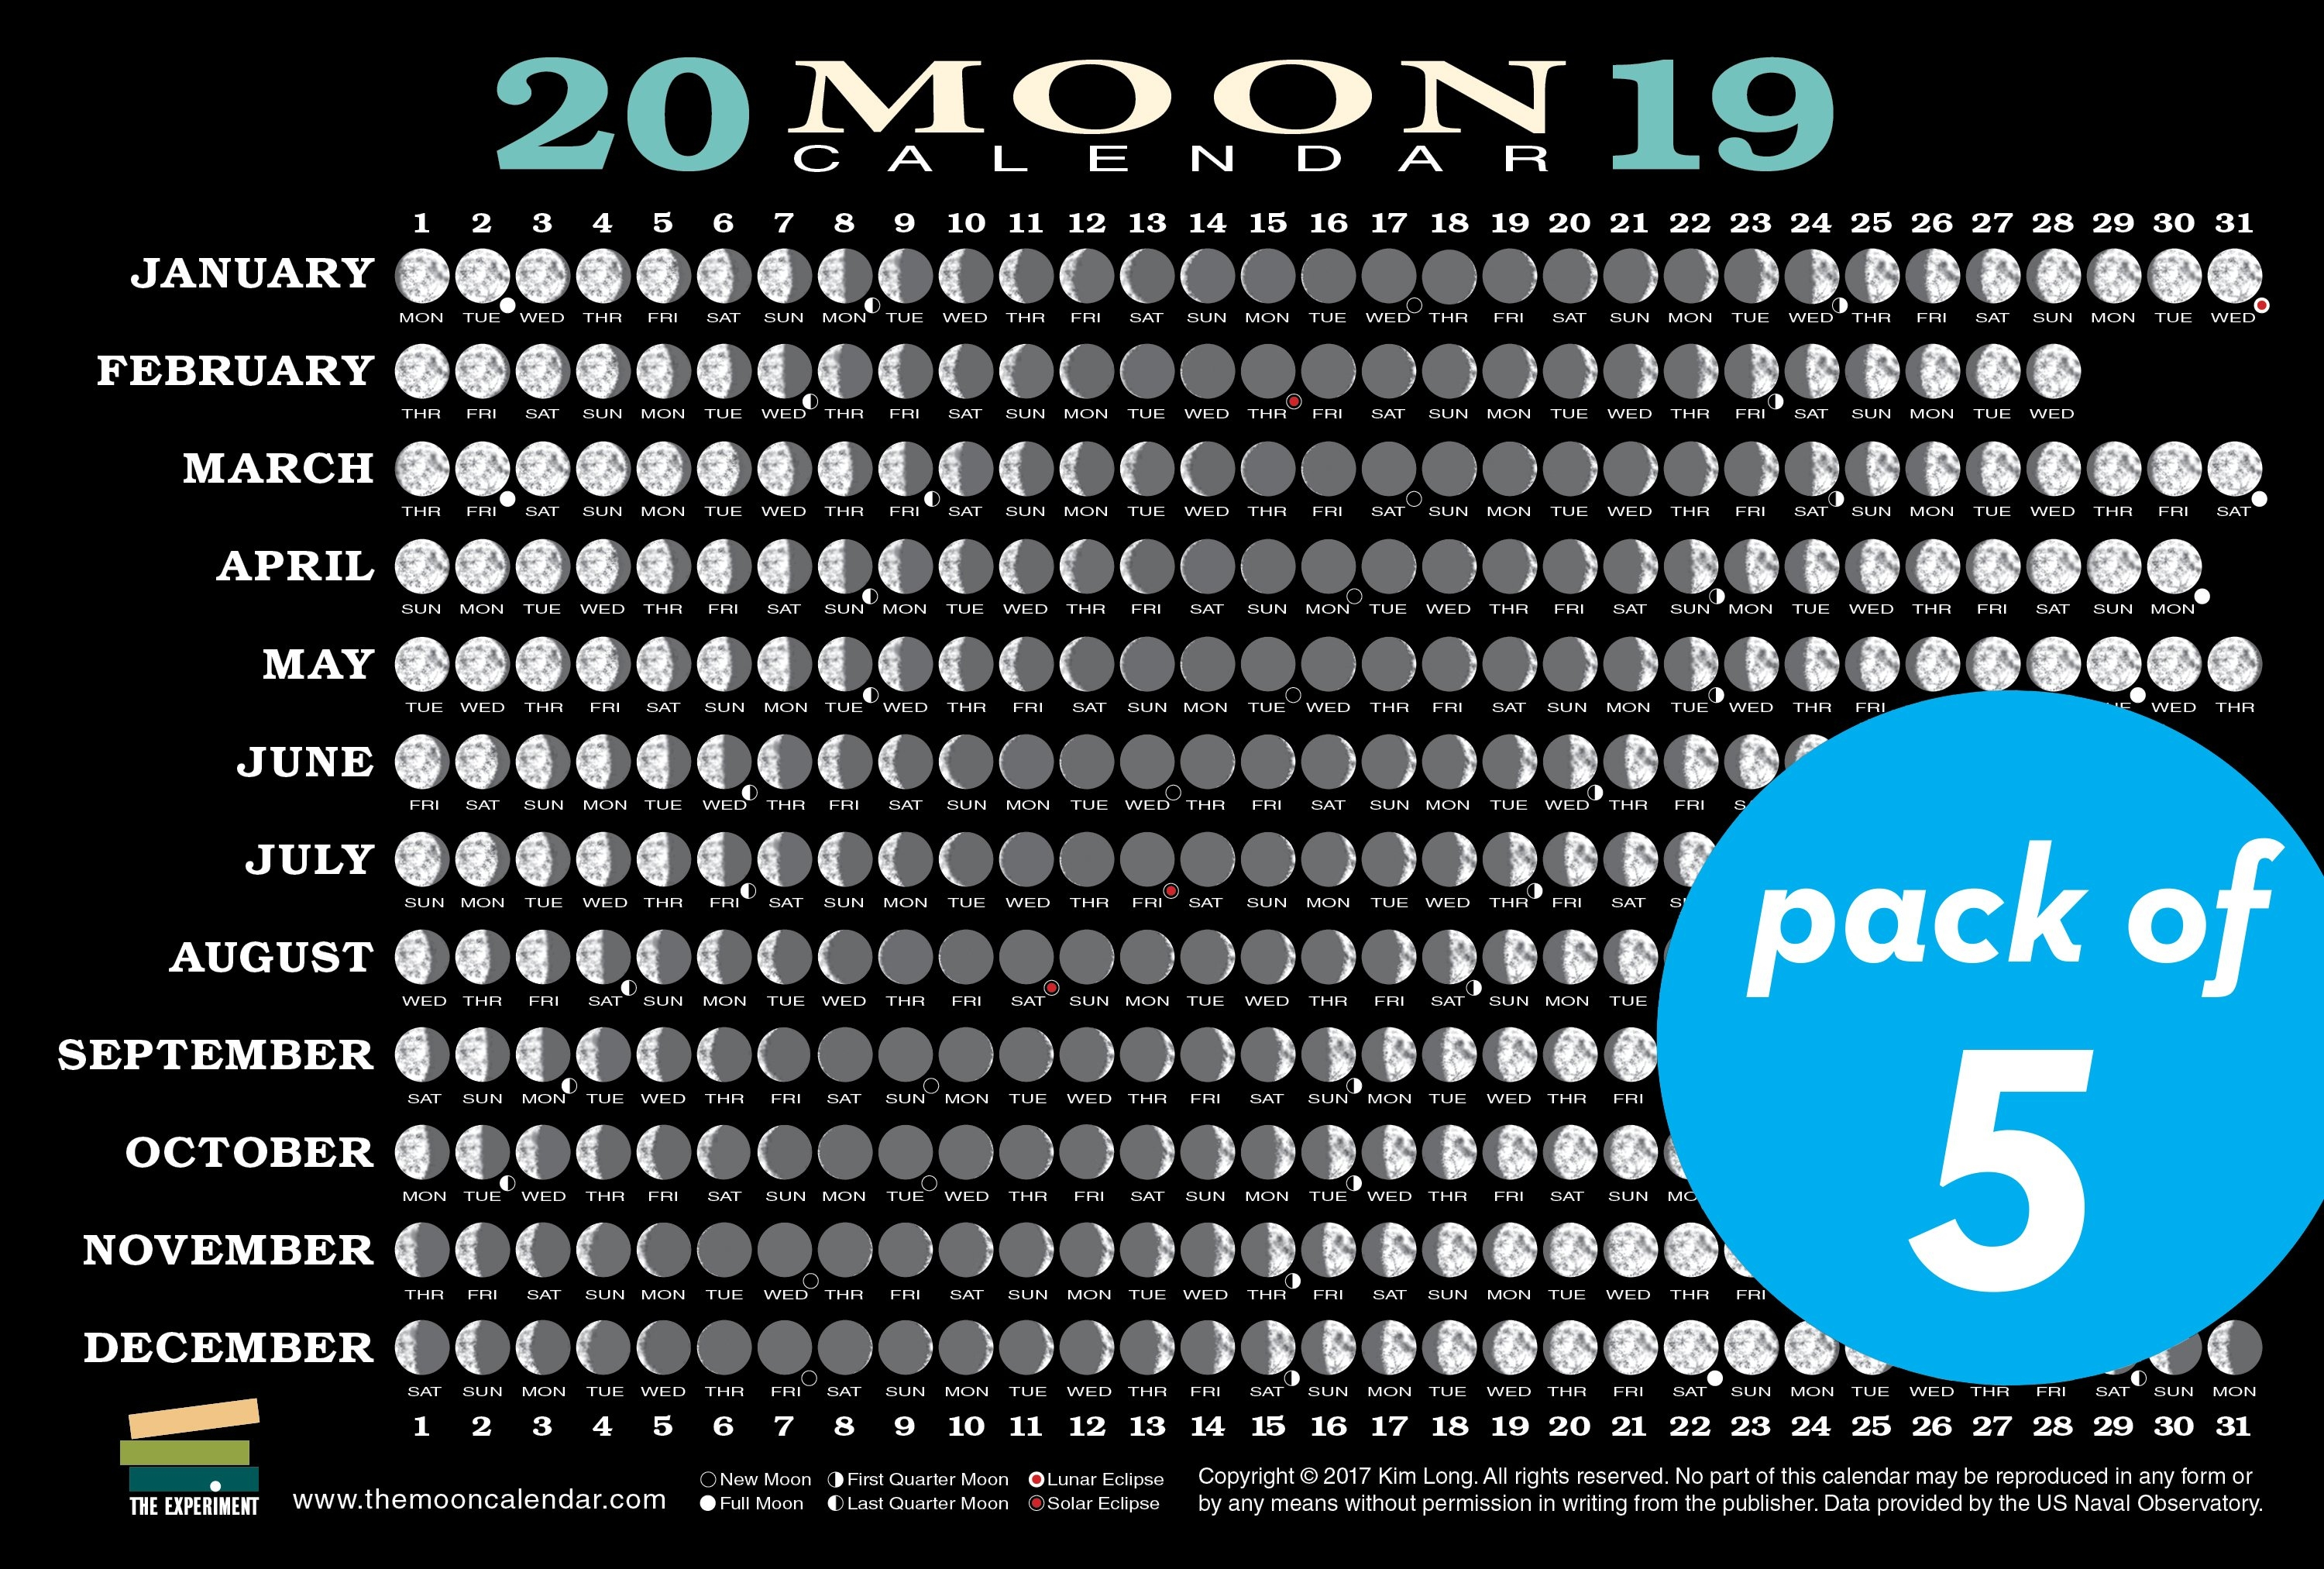 2019 Moon Calendar Card (5 Pack). Nataraj Books Calendar 2019 Moon